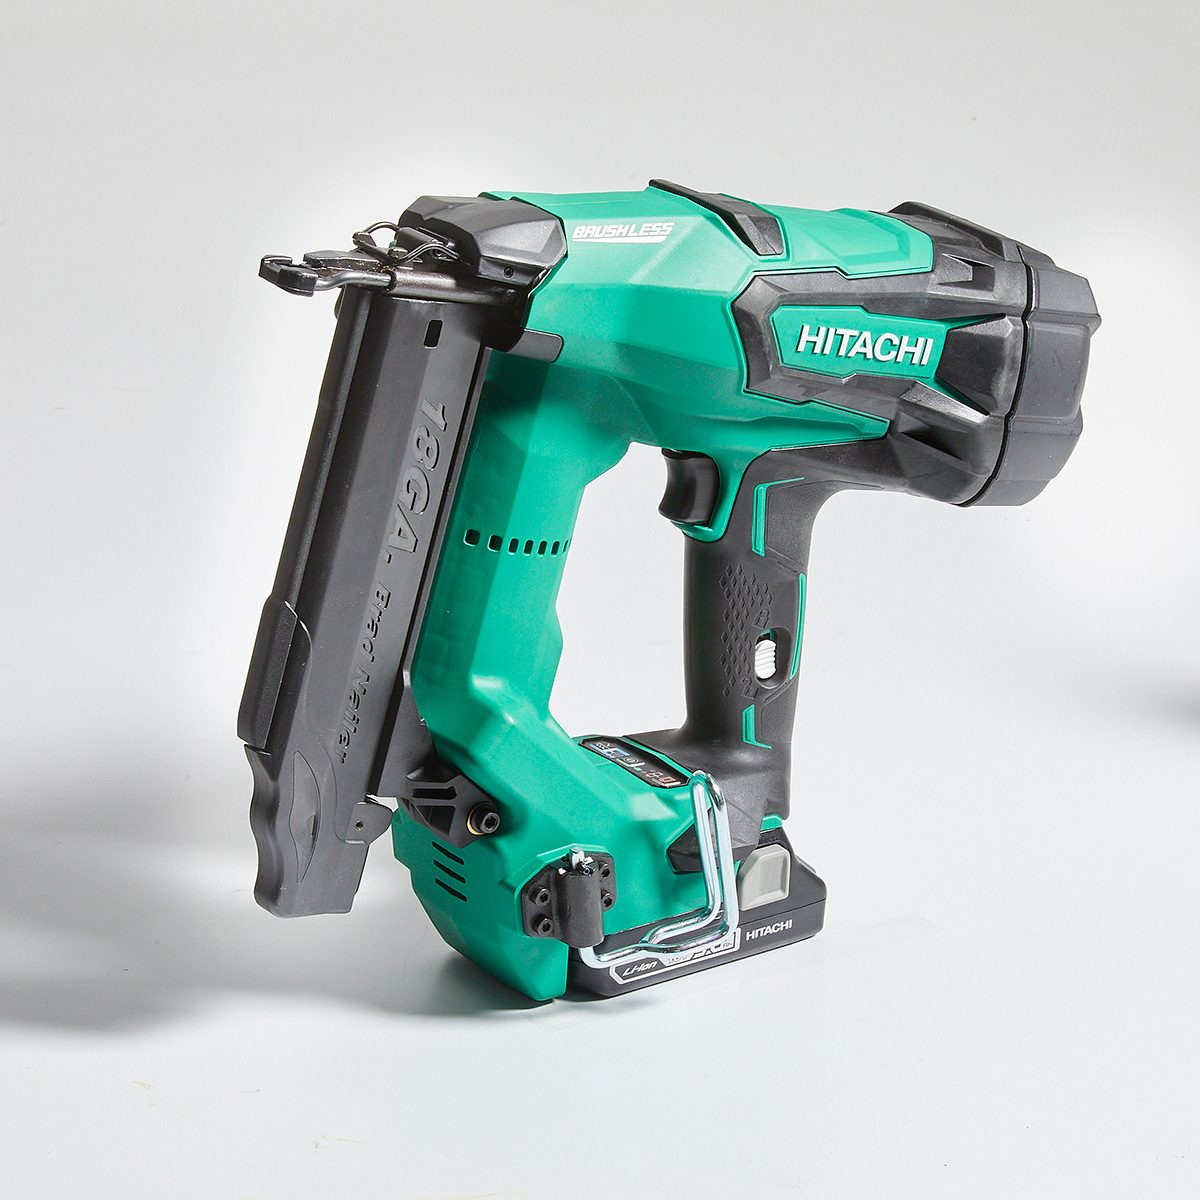 Hitachi Brad Nailer | Construction Pro Tips